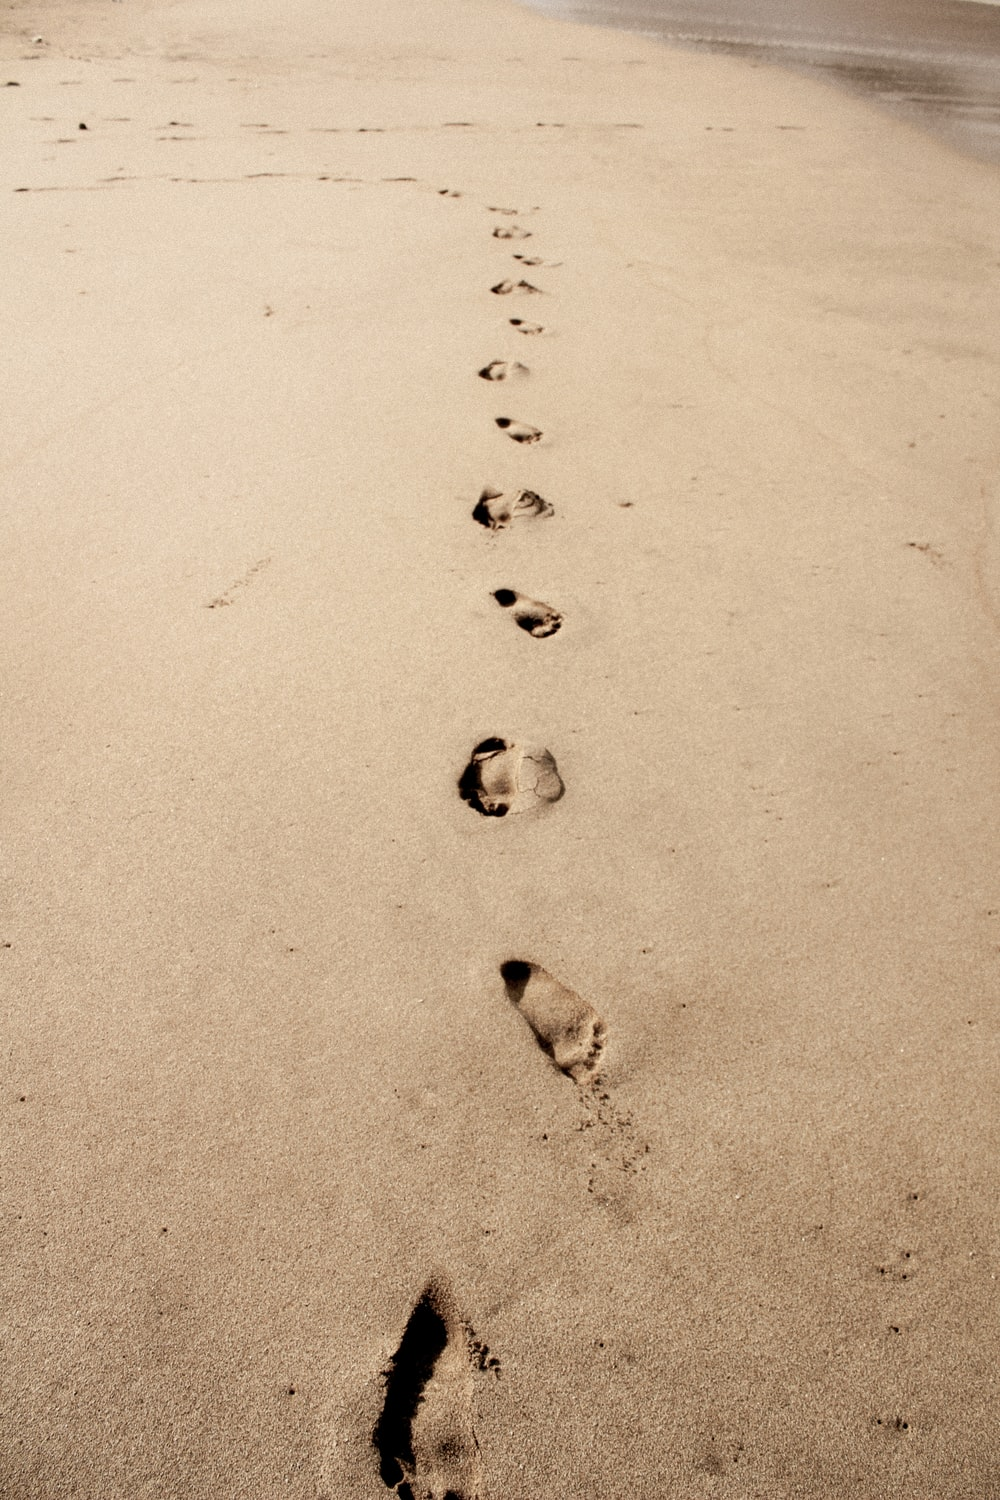 photo of footprints in the sand